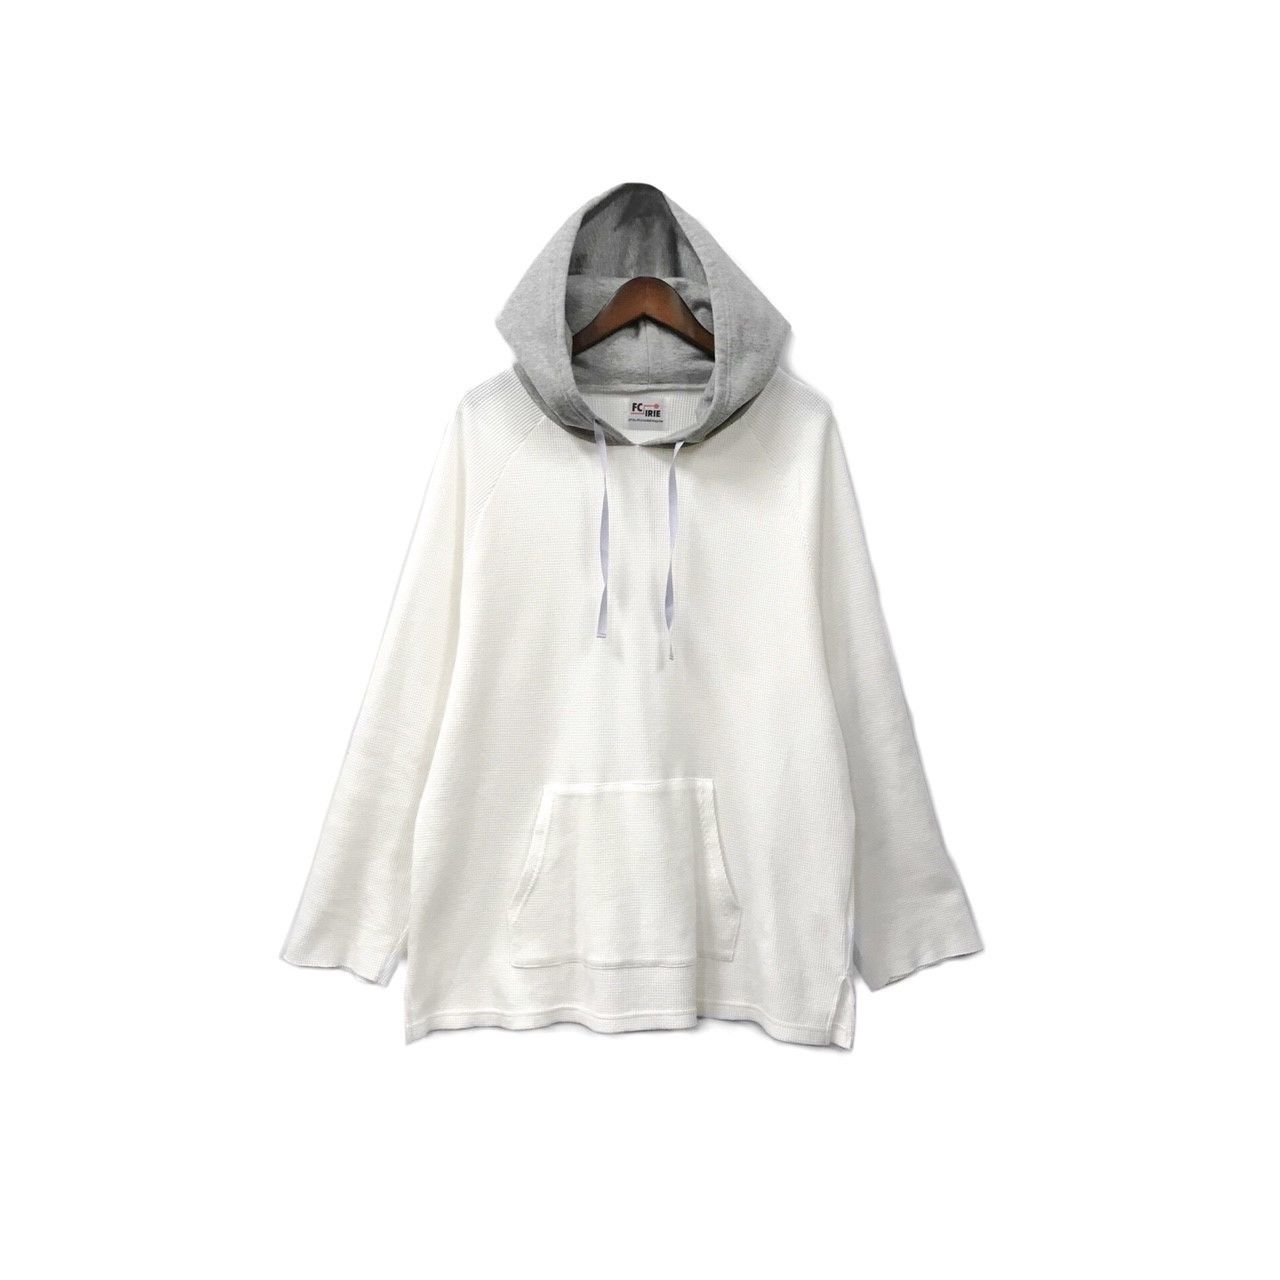 FC IRIE - Switching Thermal Parka / White・Gray ?11000+tax